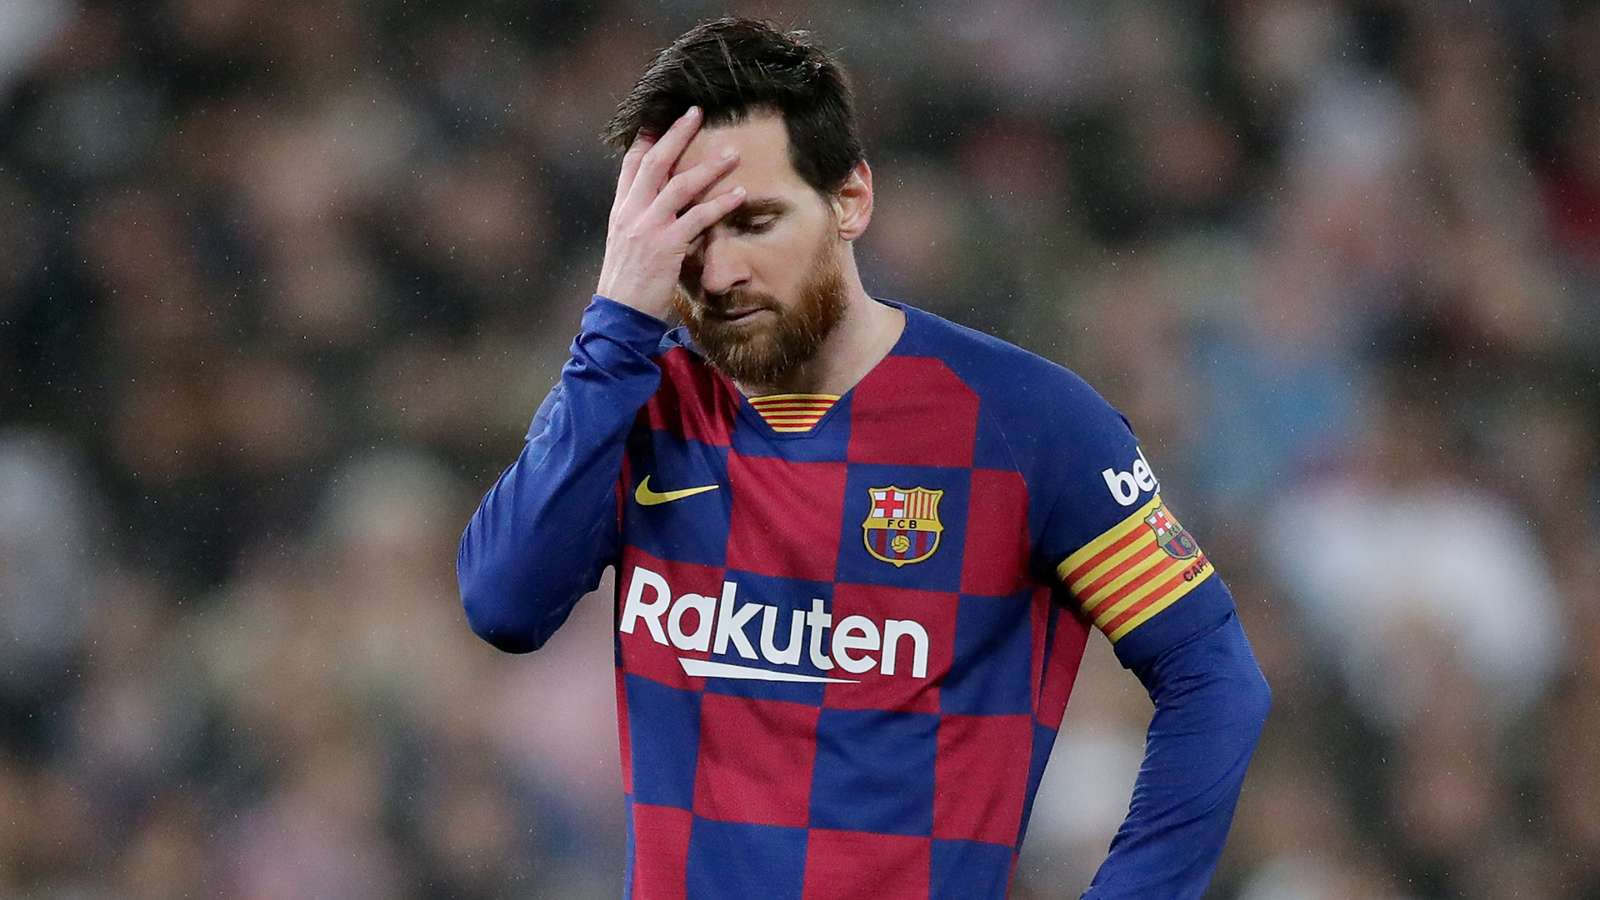 Madrid makes the most of Messi's weak offer to revive the La Liga title race